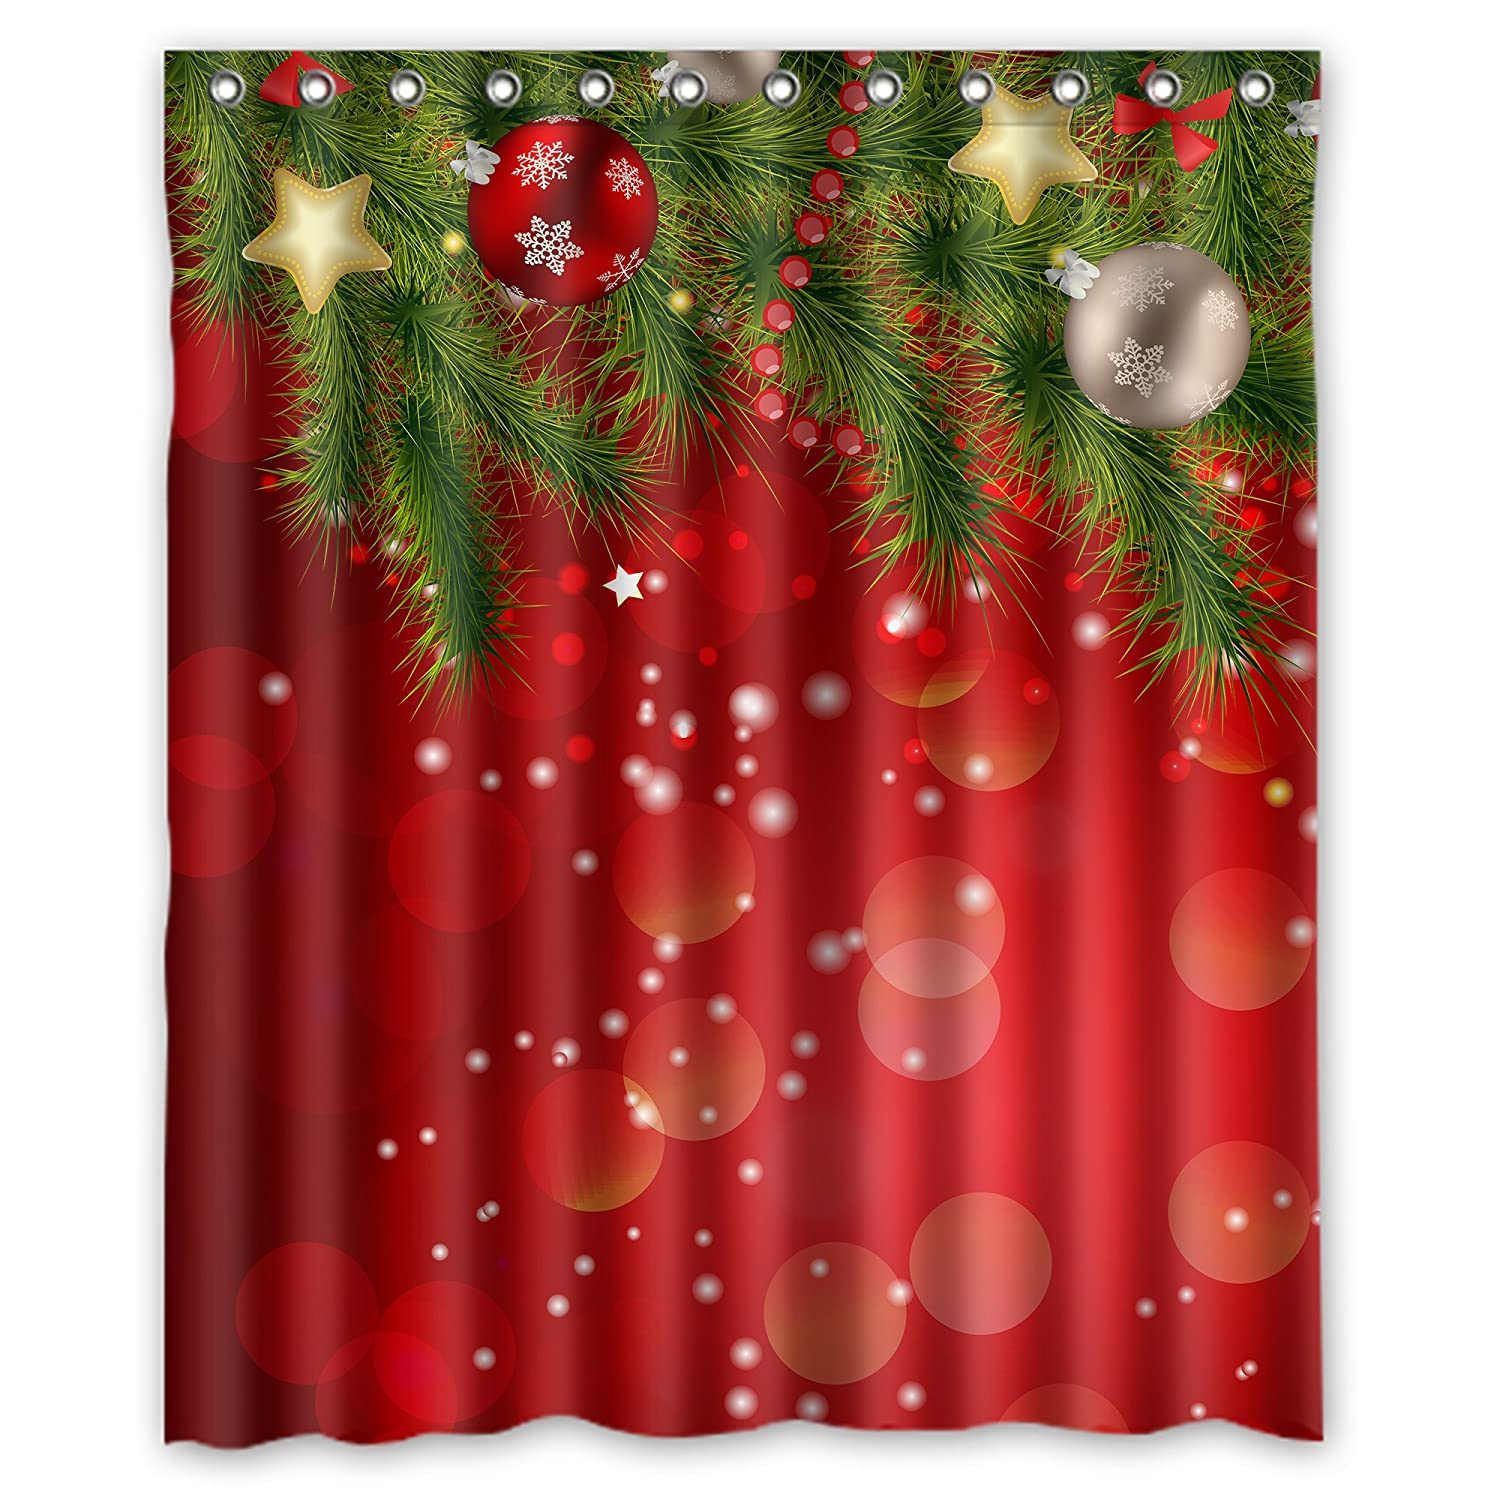 Christmas Shower Curtains Amazon.Fmshpon Merry Christmas Shower Curtain